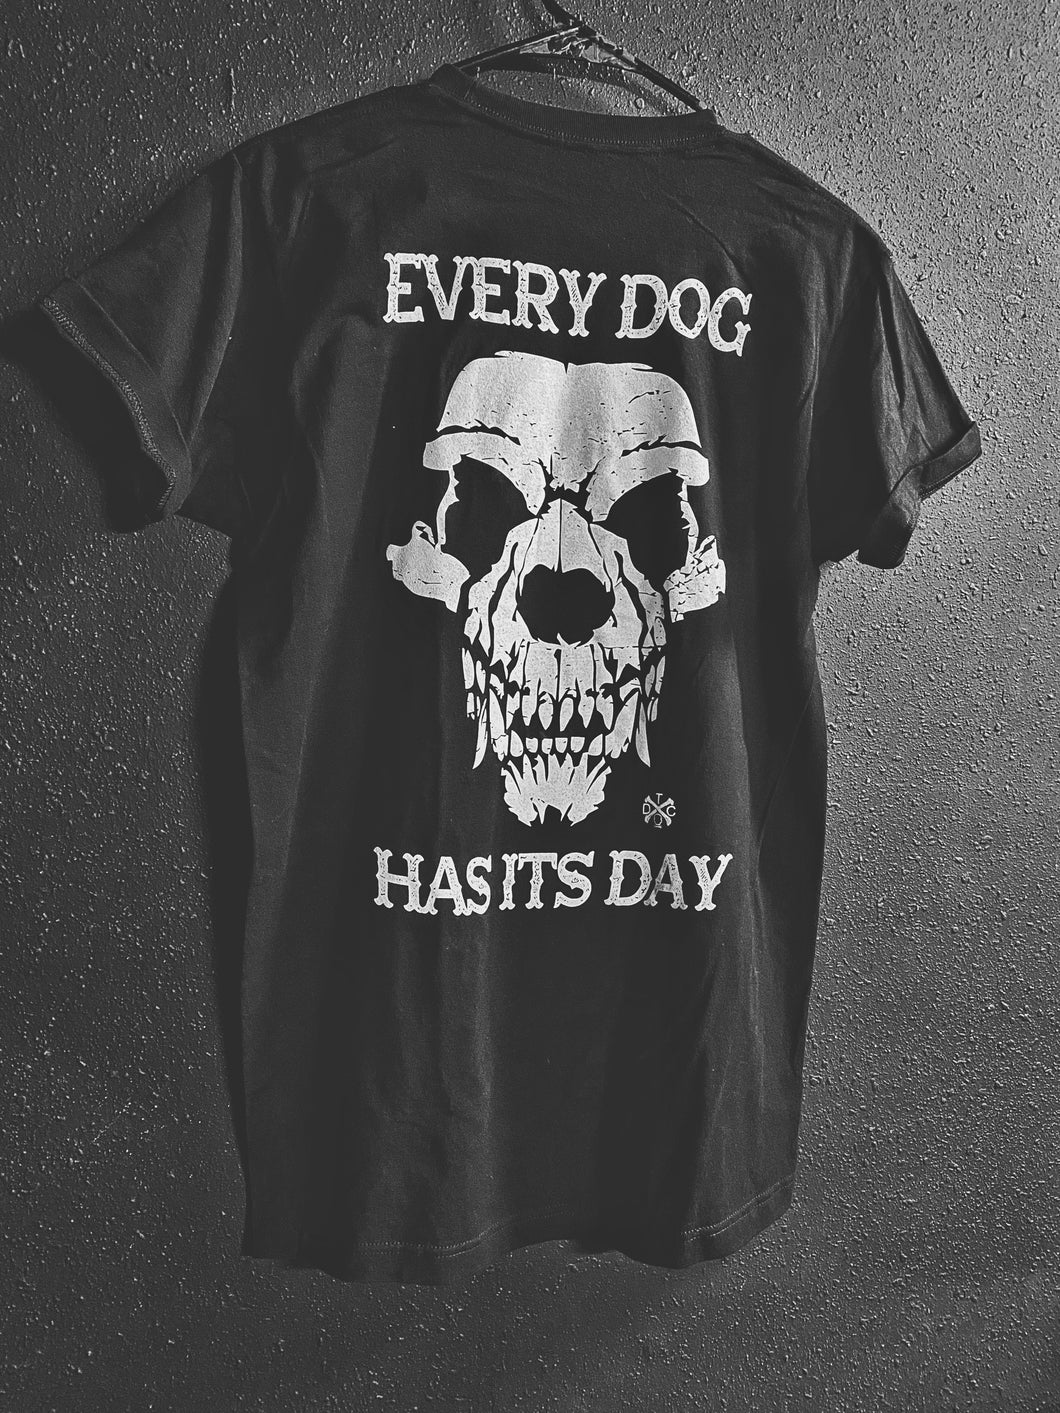 22- Doggy Day Tee